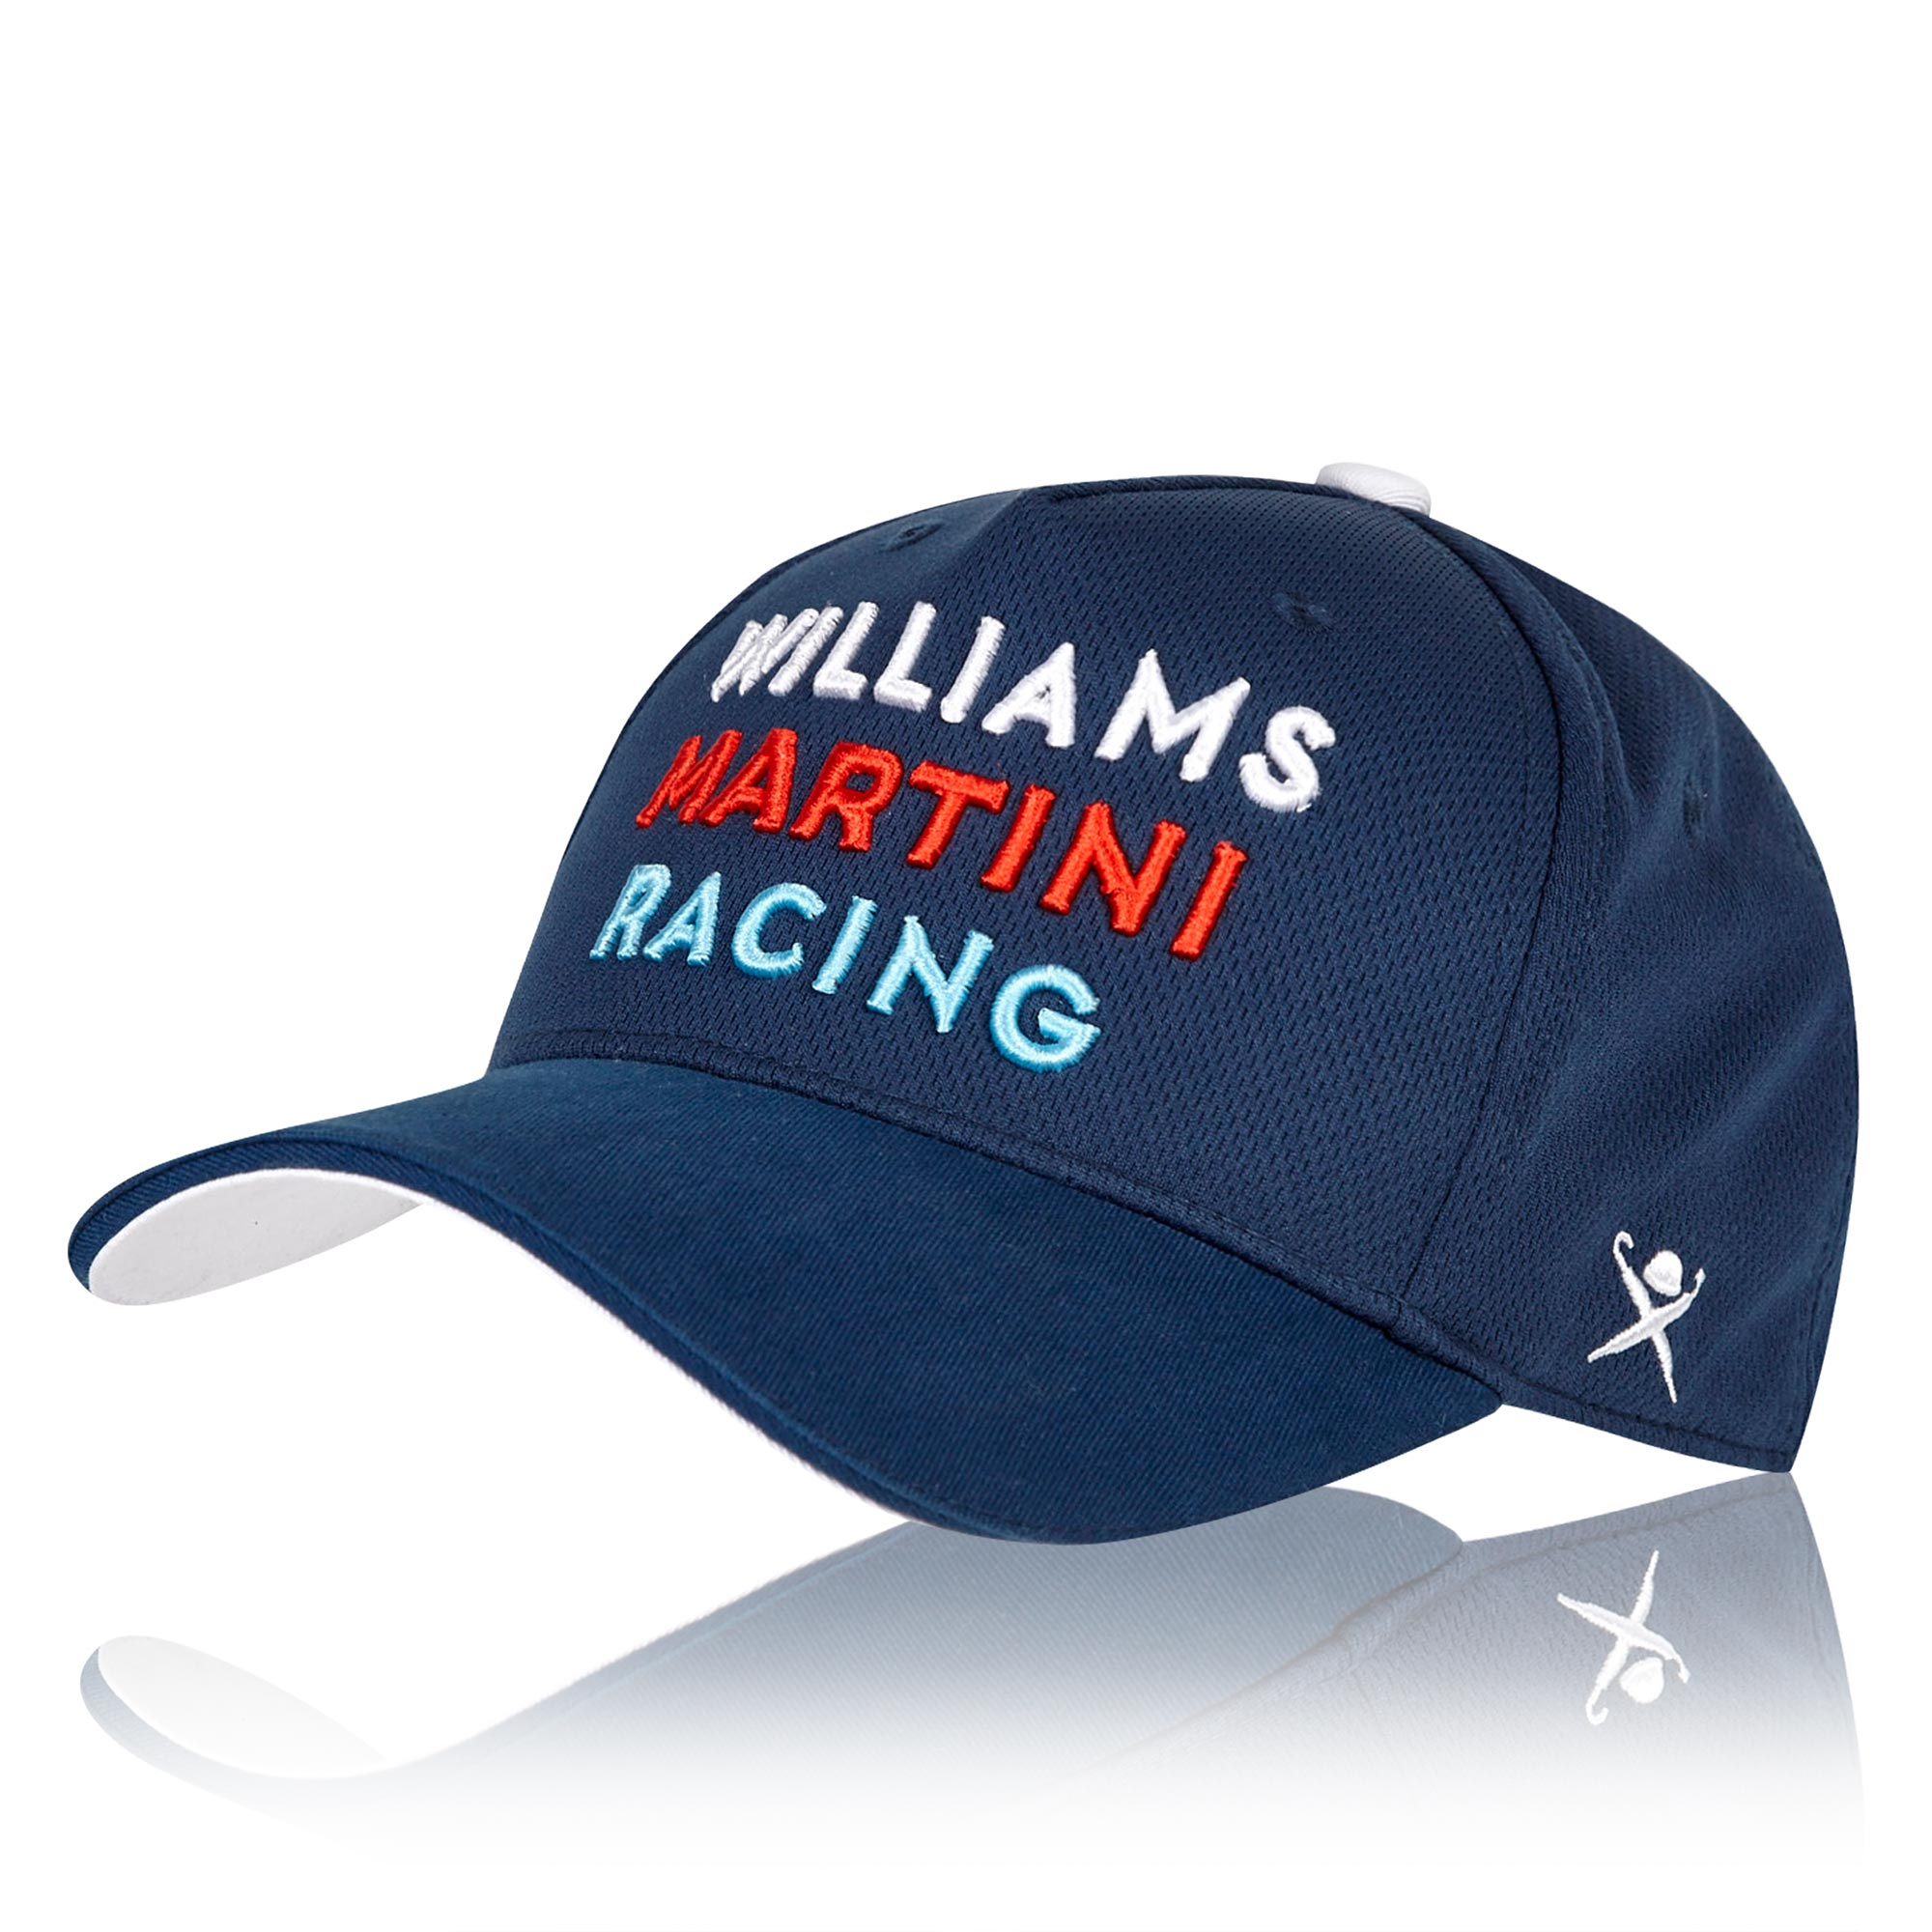 2017 Williams F1 Cap